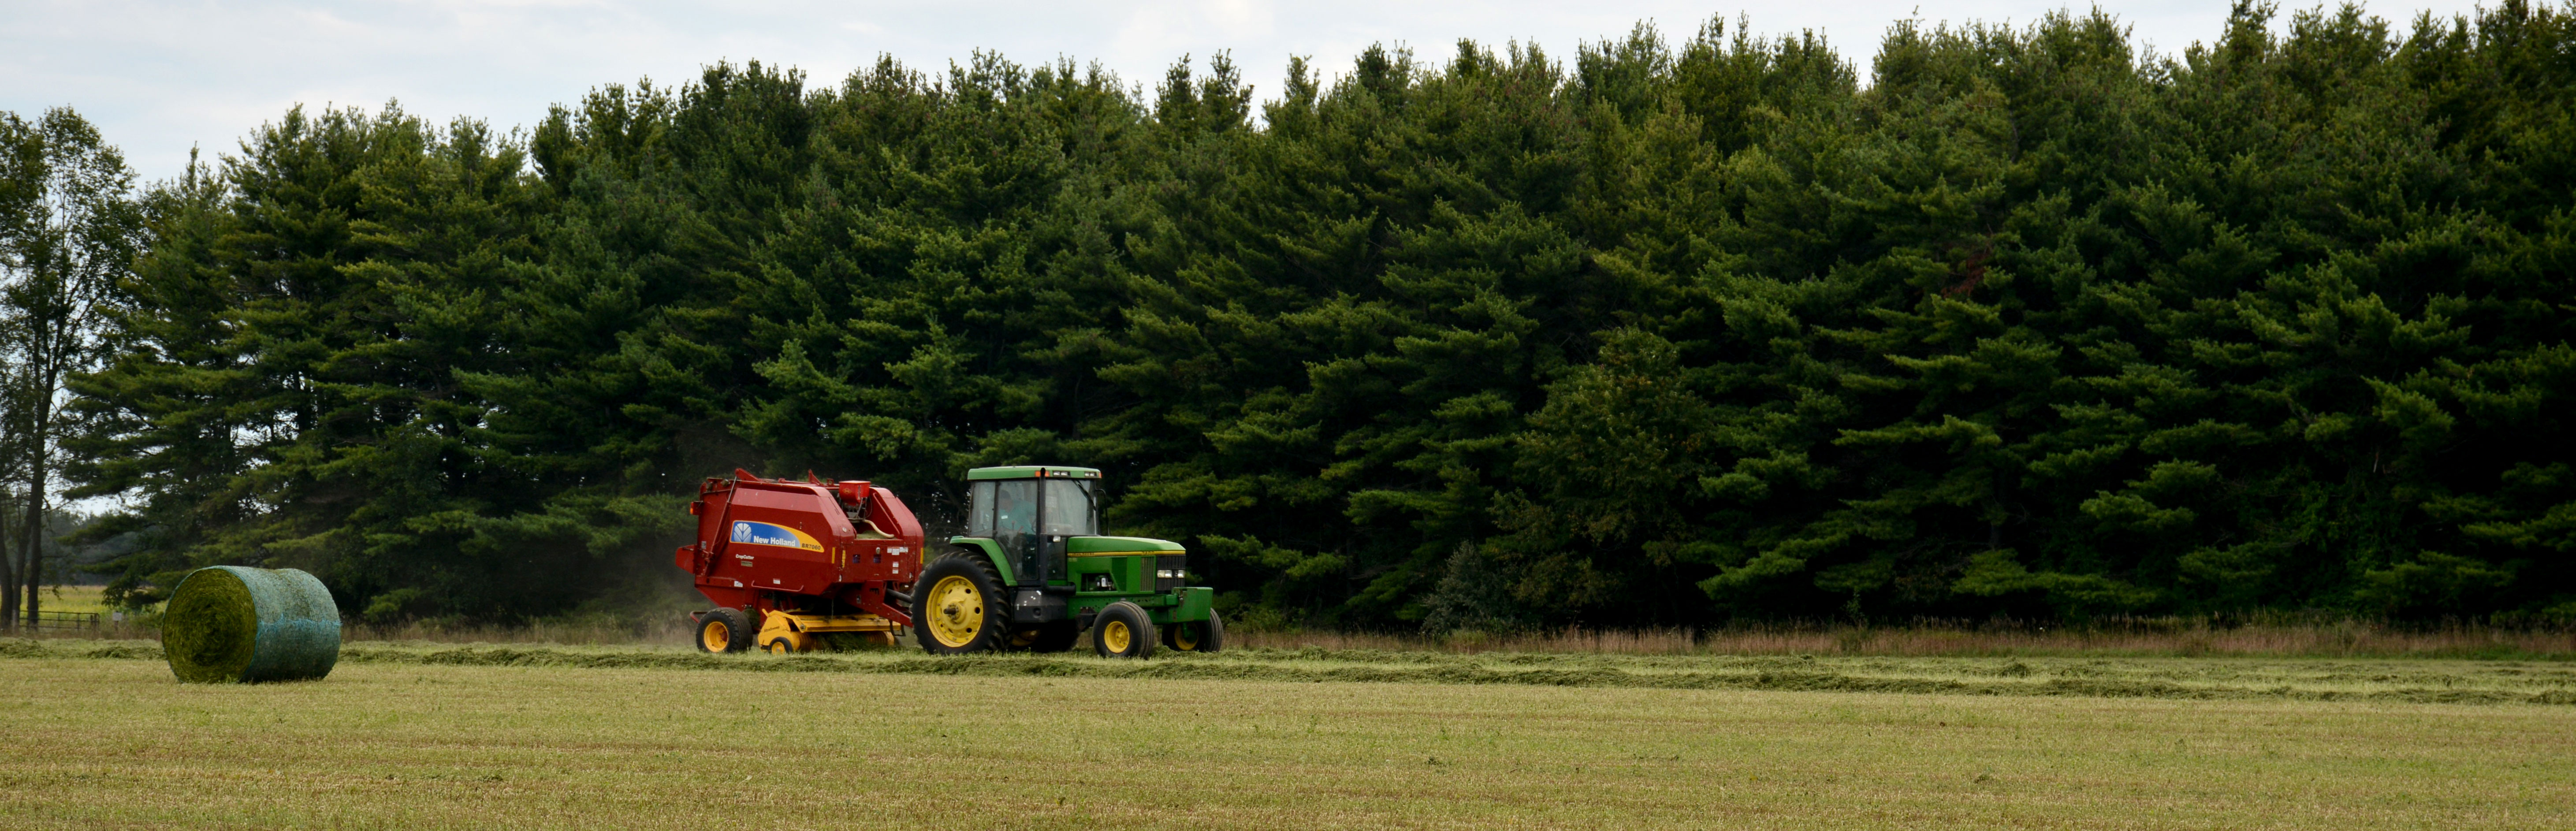 A tractor mows a field along a row of pine trees.